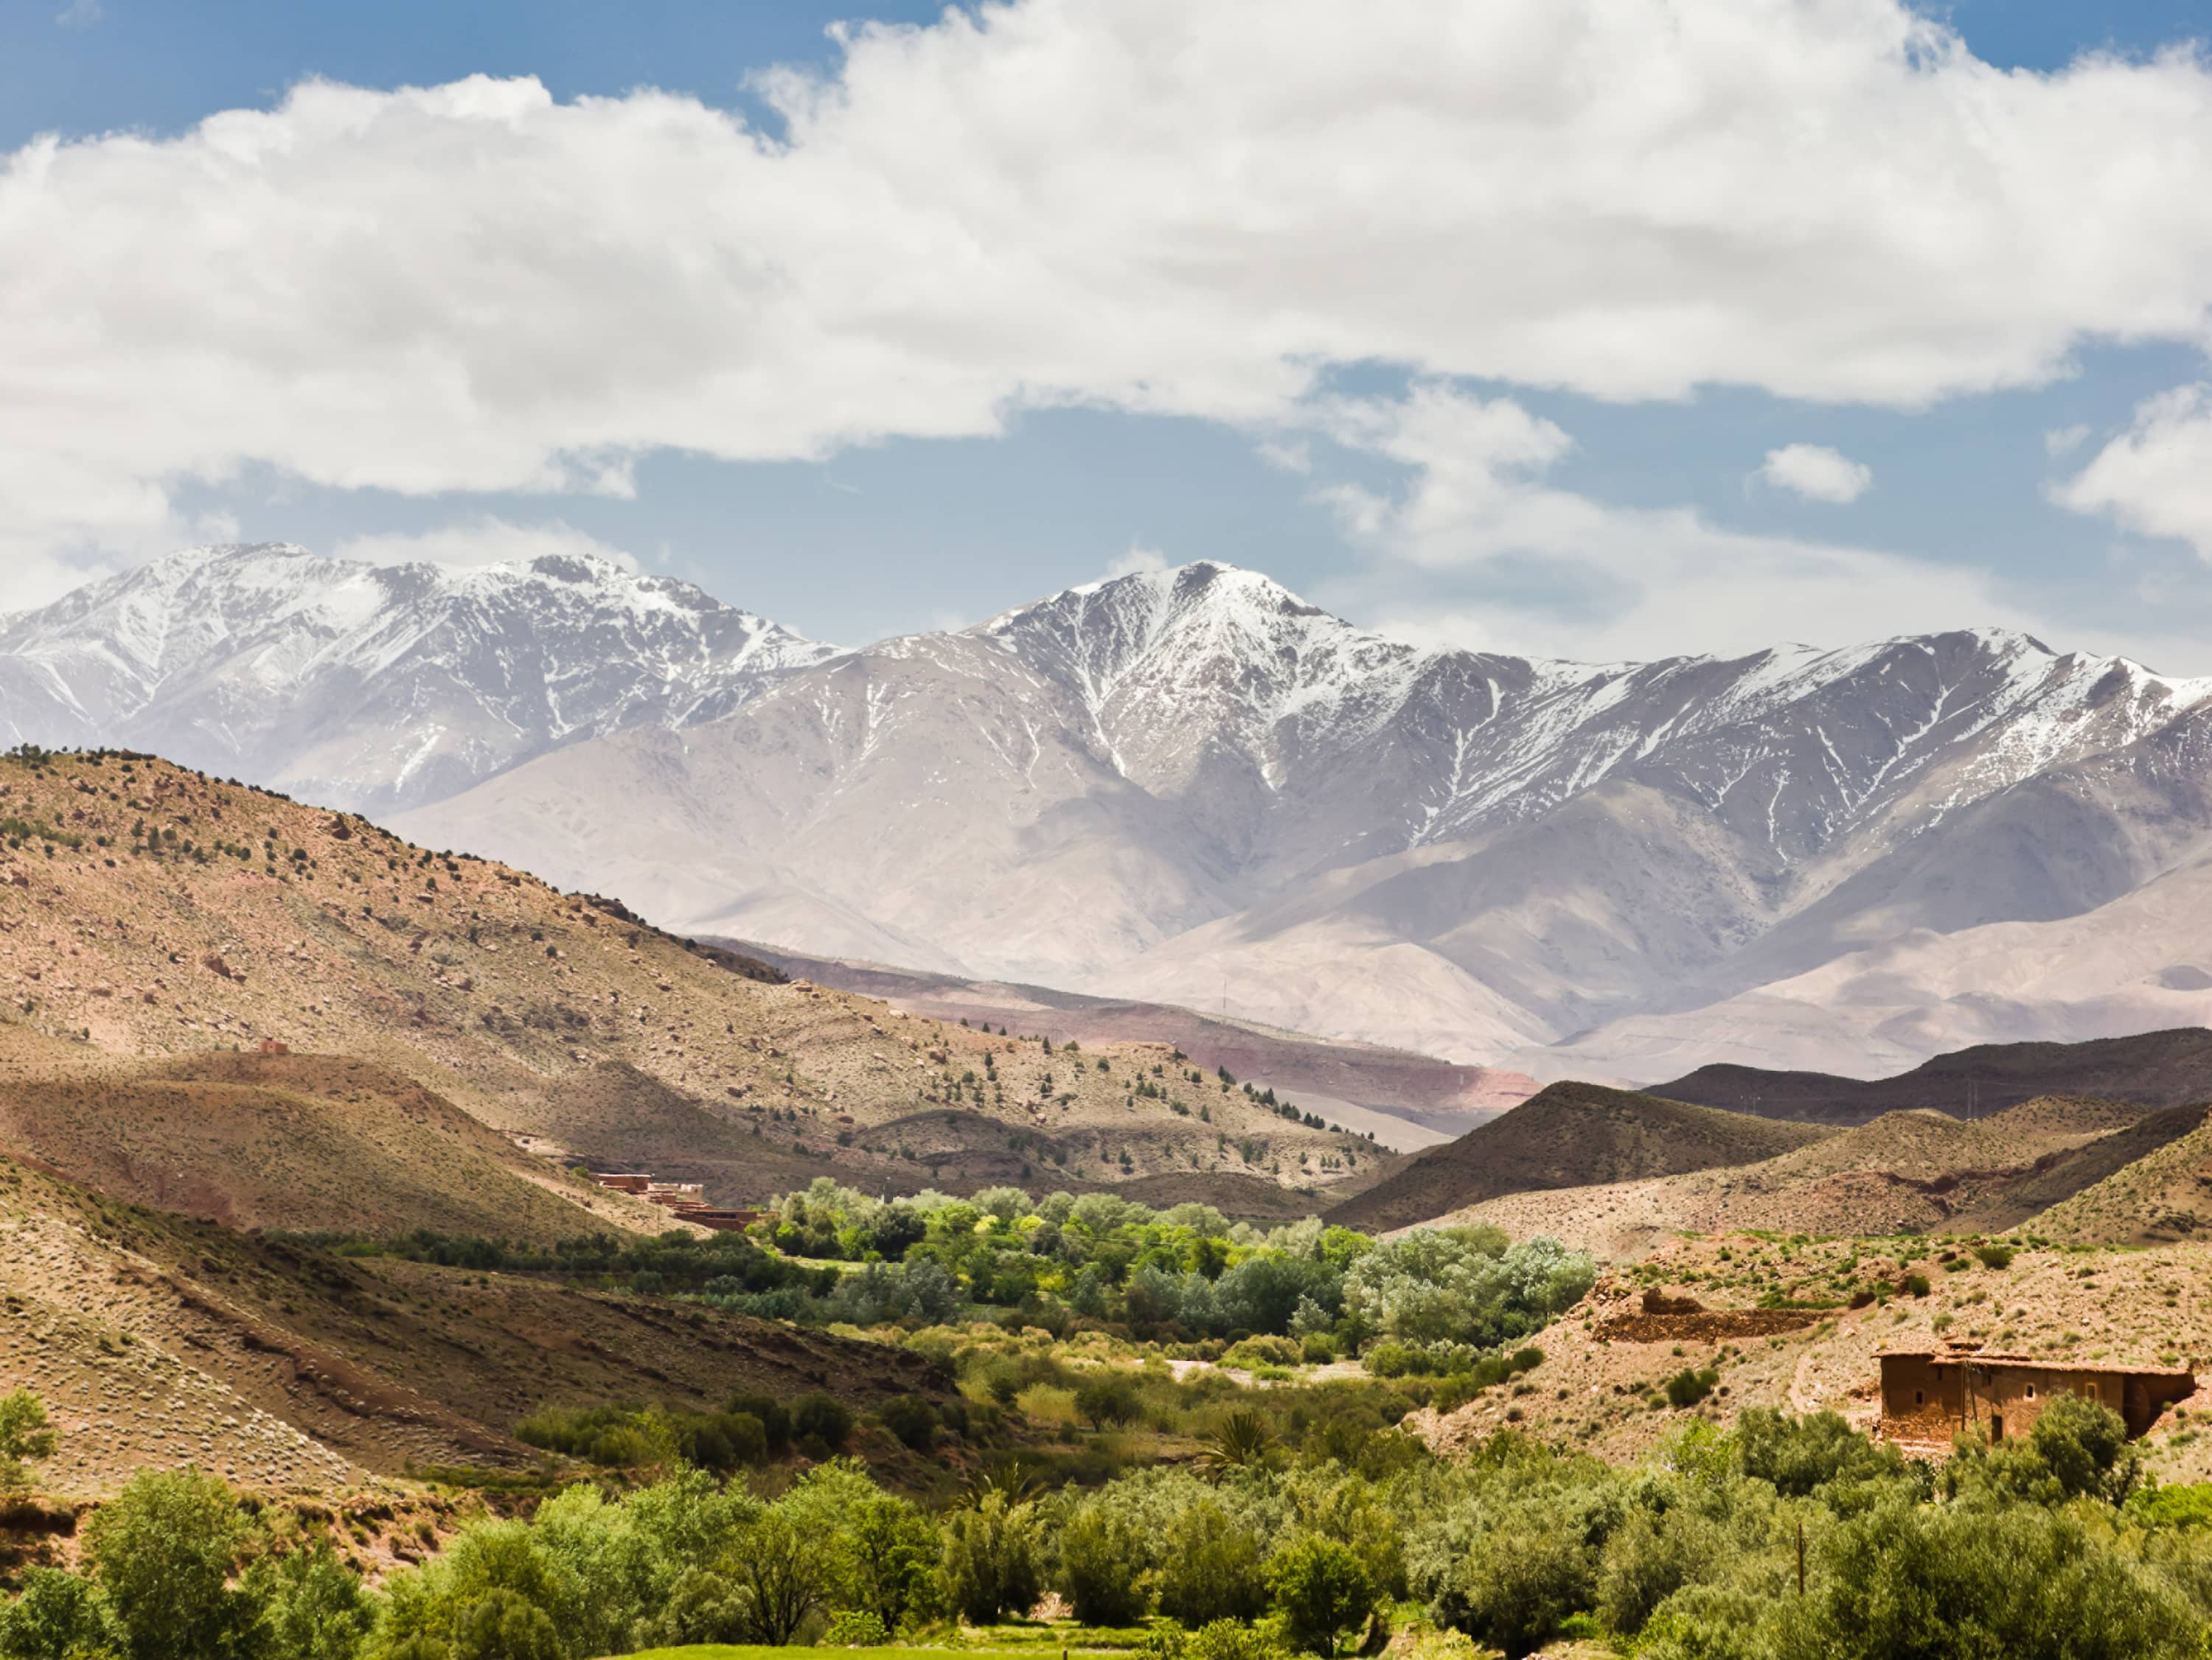 SPEND A DAY IN THE ATLAS MOUNTAINS